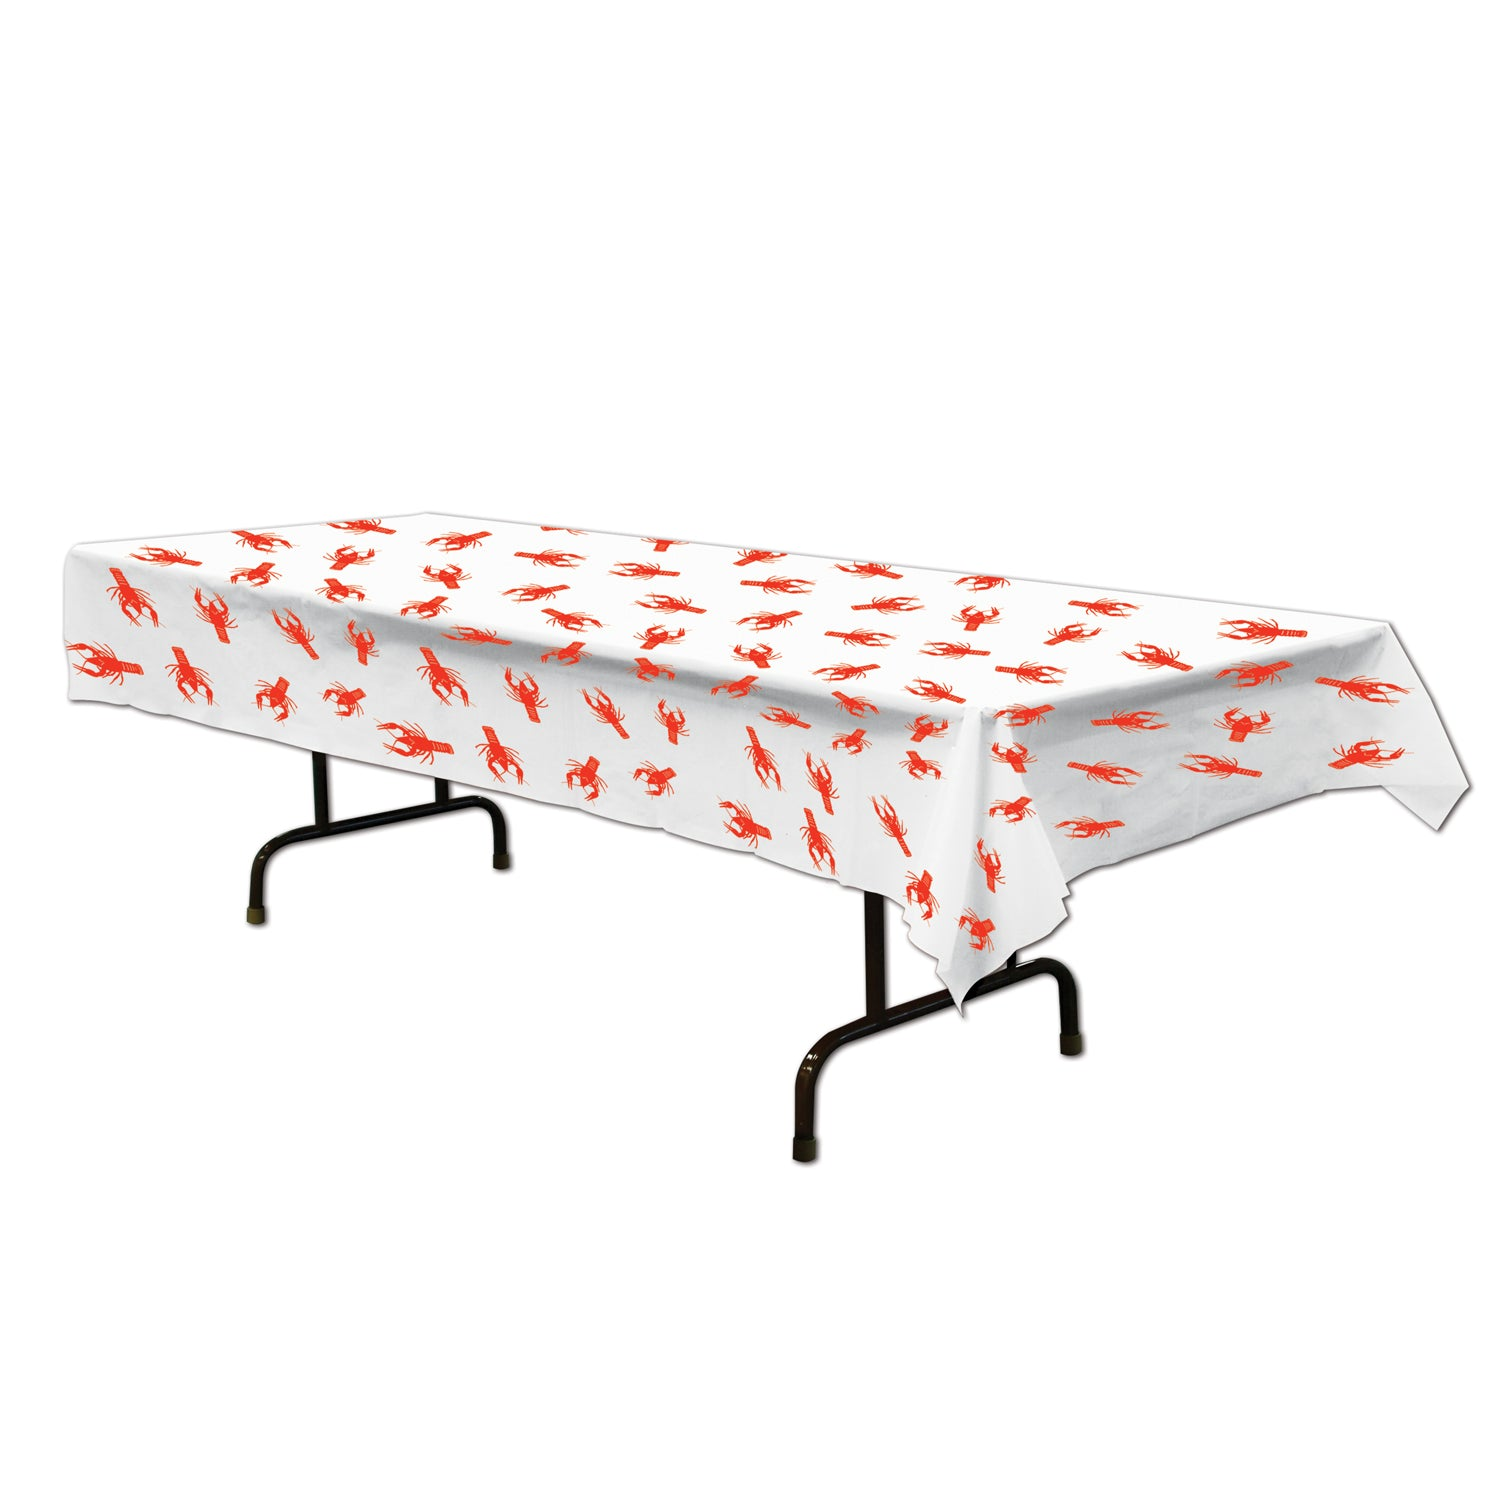 Crawfish Tablecover by Beistle - Mardi Gras Theme Decorations